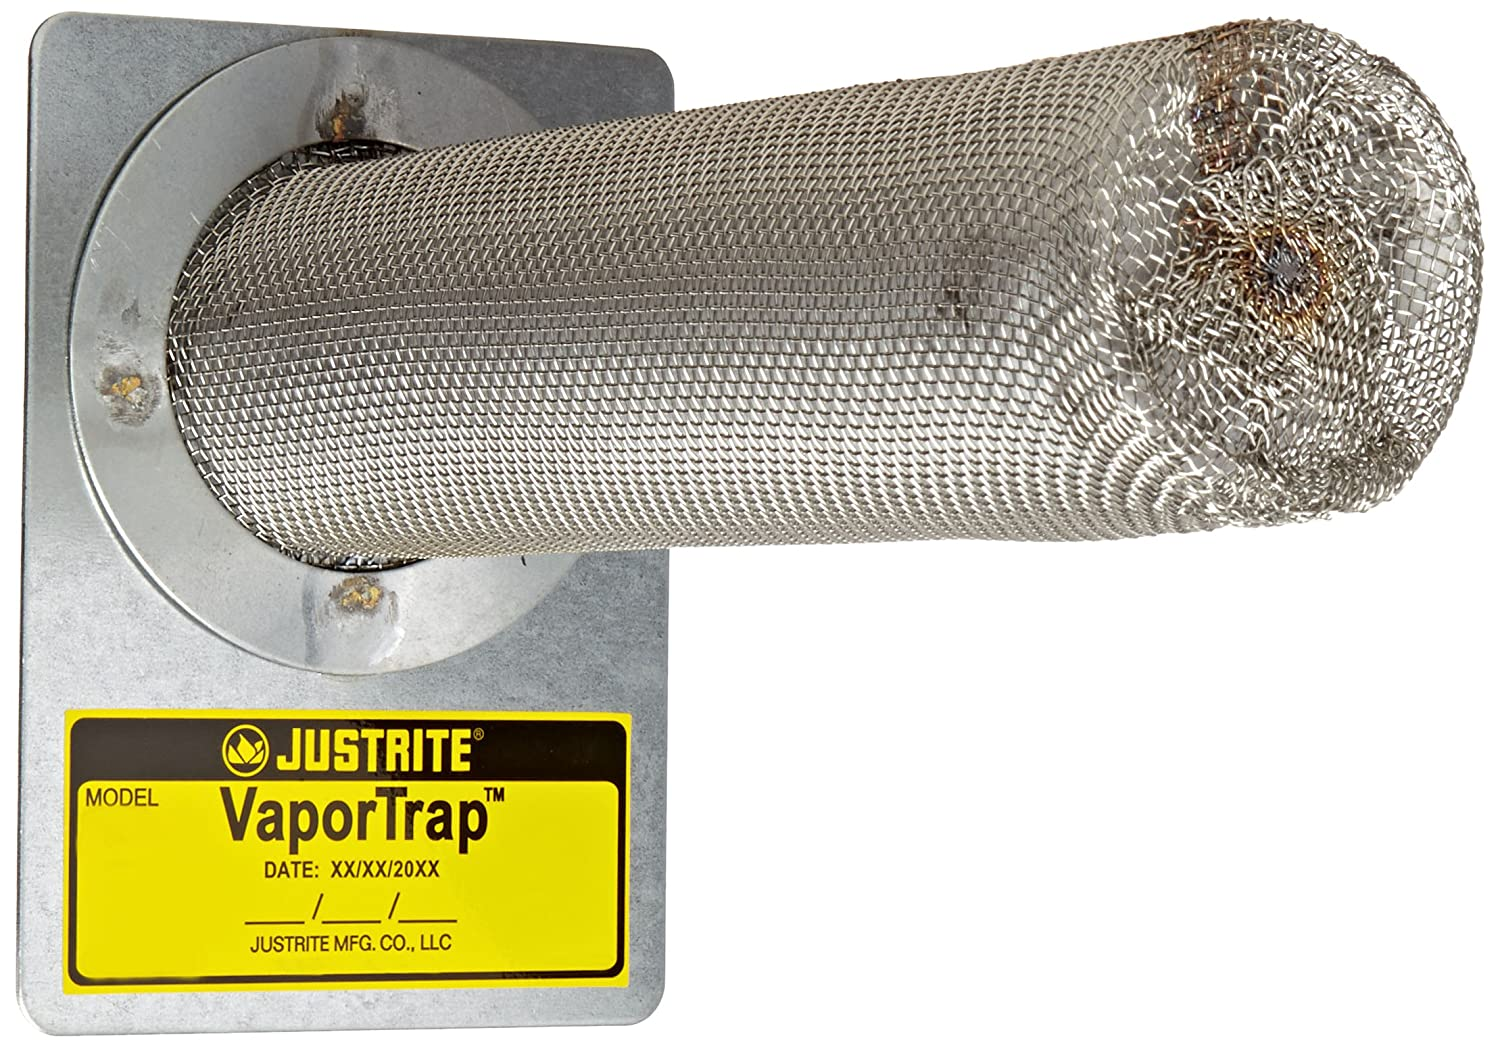 Justrite 29916 VaporTrap Cabinet Filter 2-1 8-3 High quality new 4 4